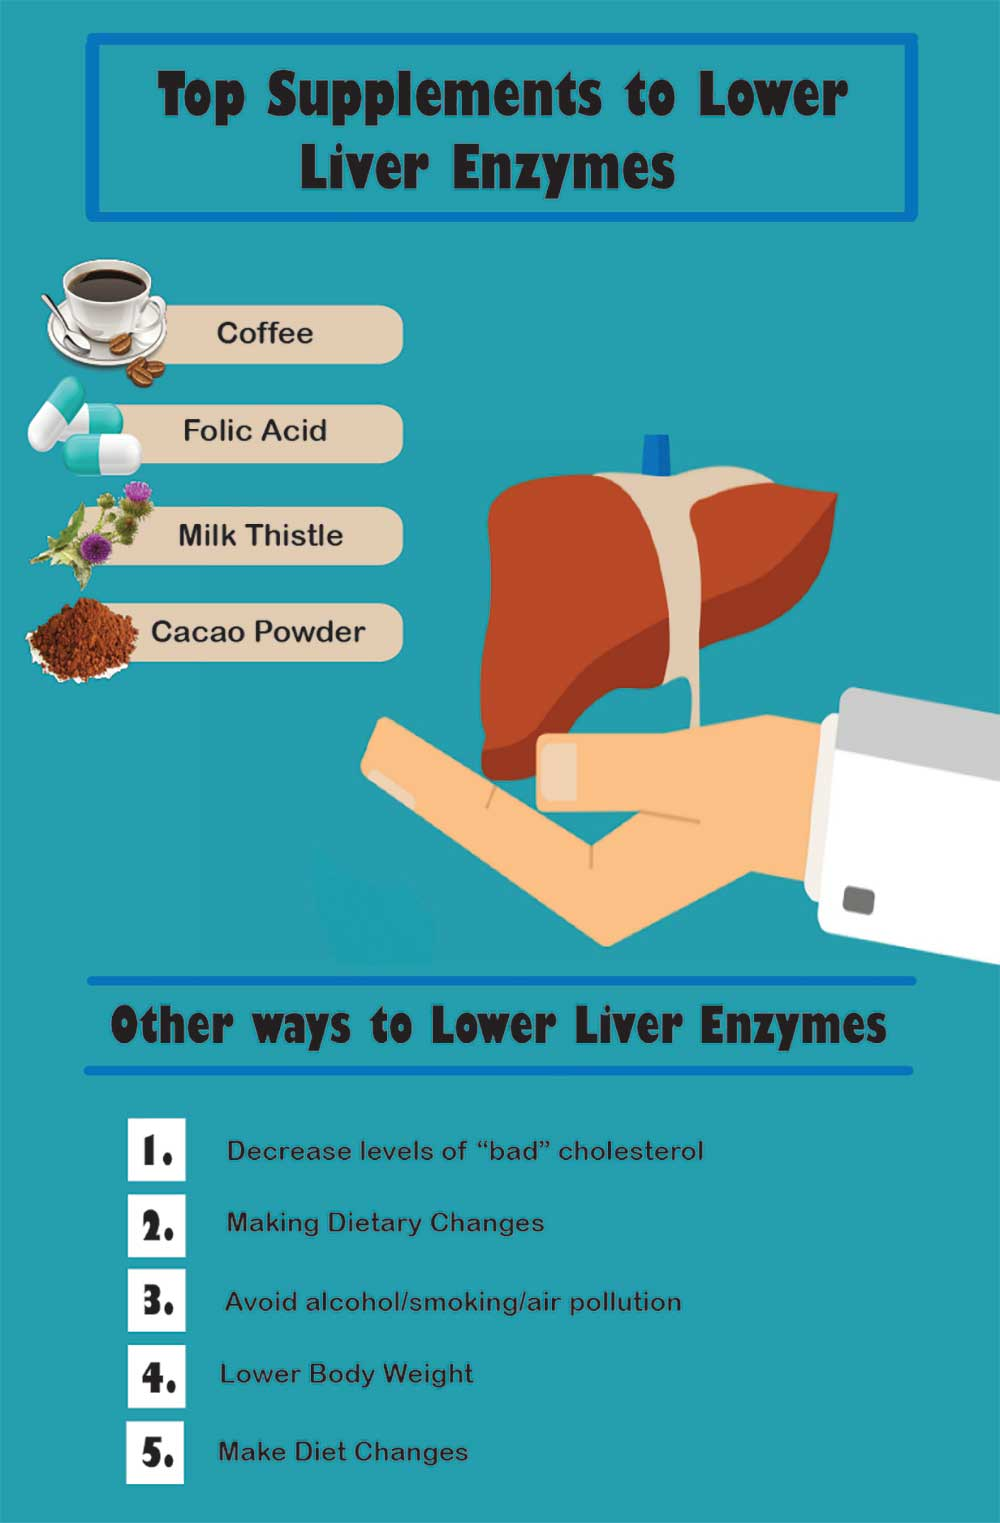 Best Supplements To Lower Liver Enzymes